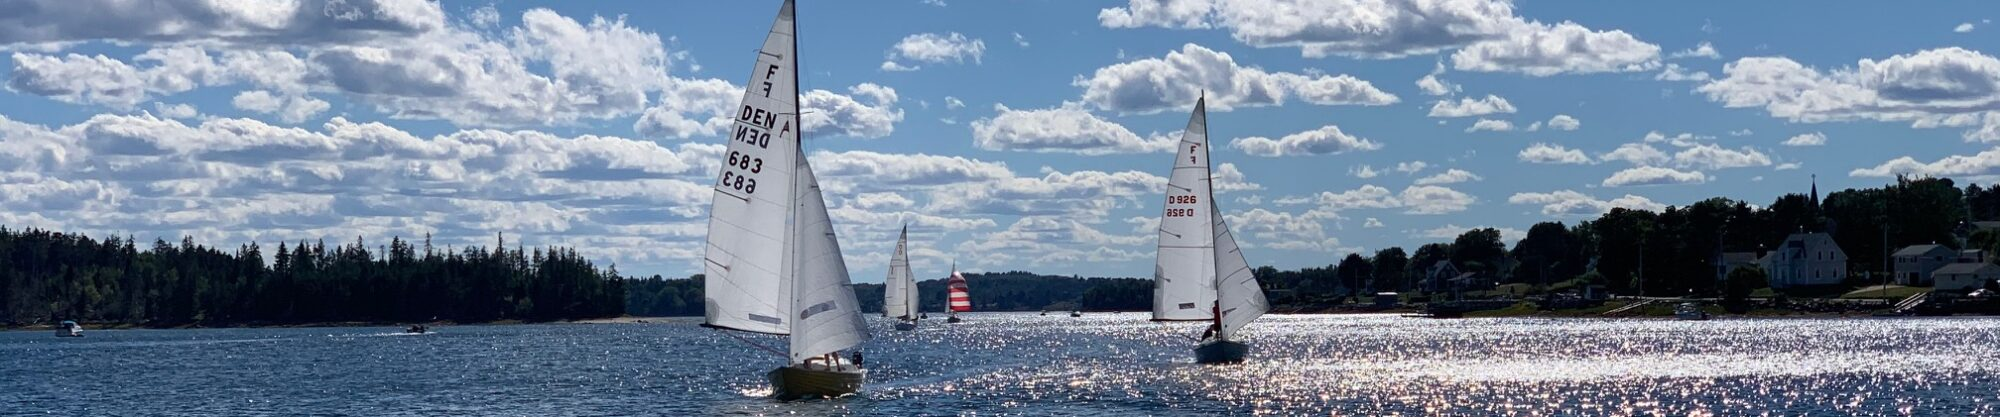 INDIAN POINT YACHT CLUB